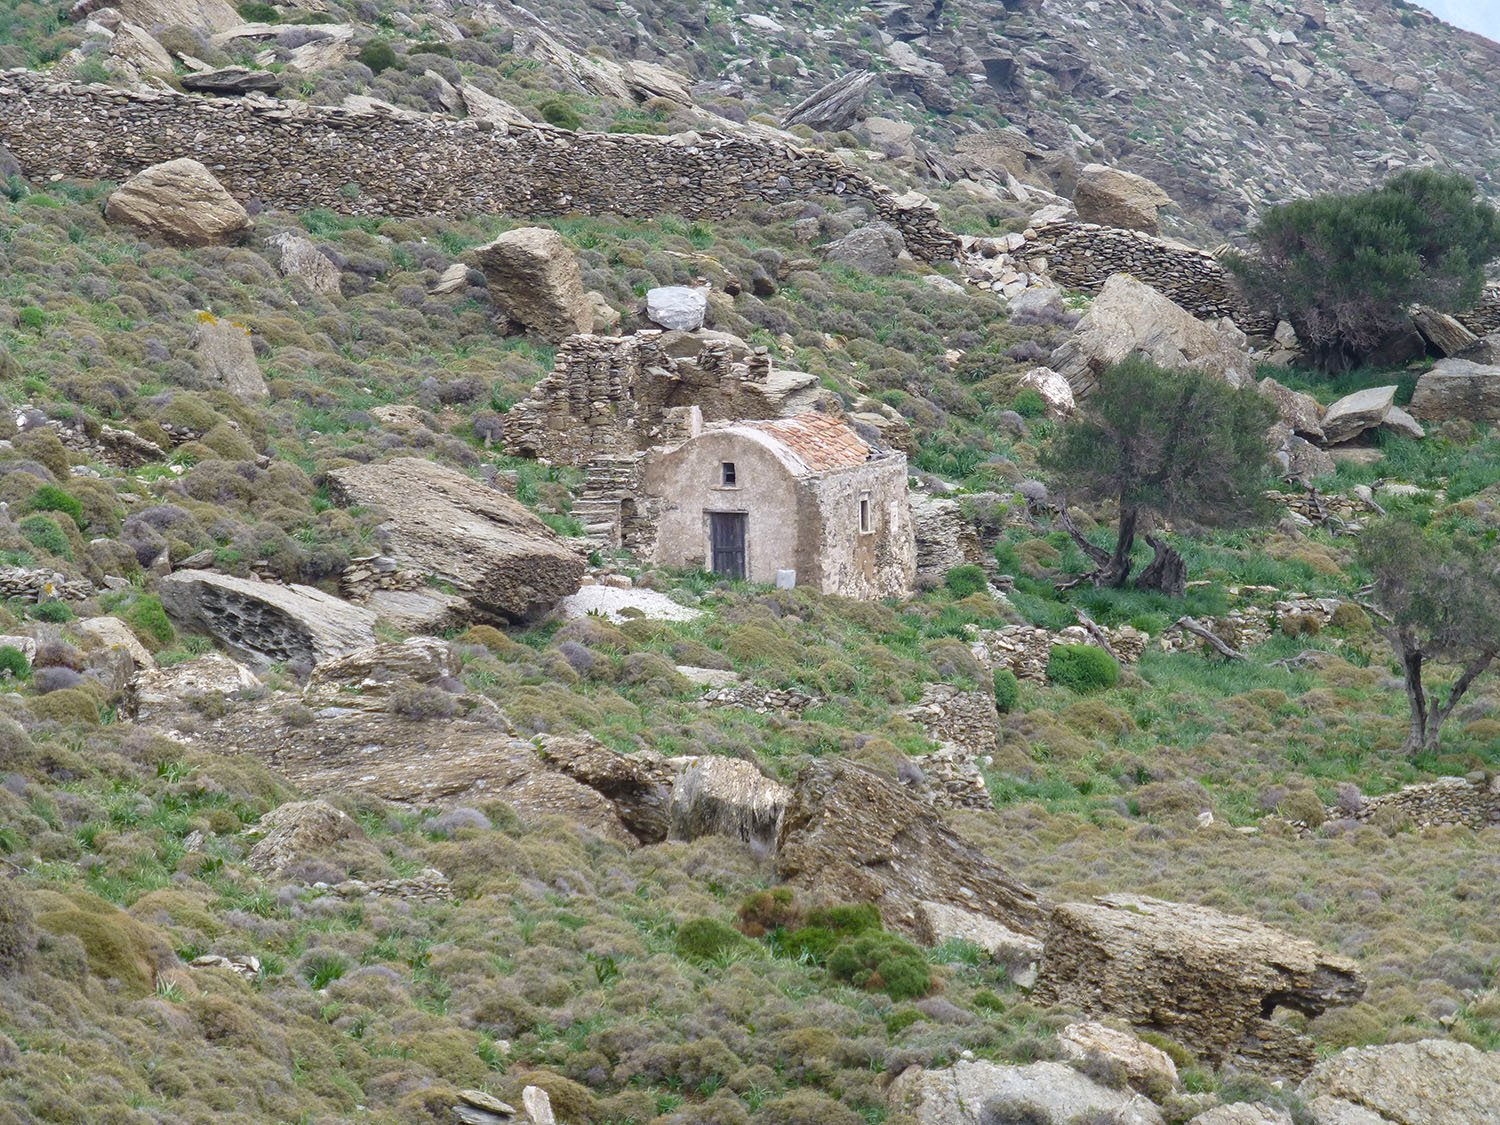 Agios Ioannis Chrysostomos on Amorgos